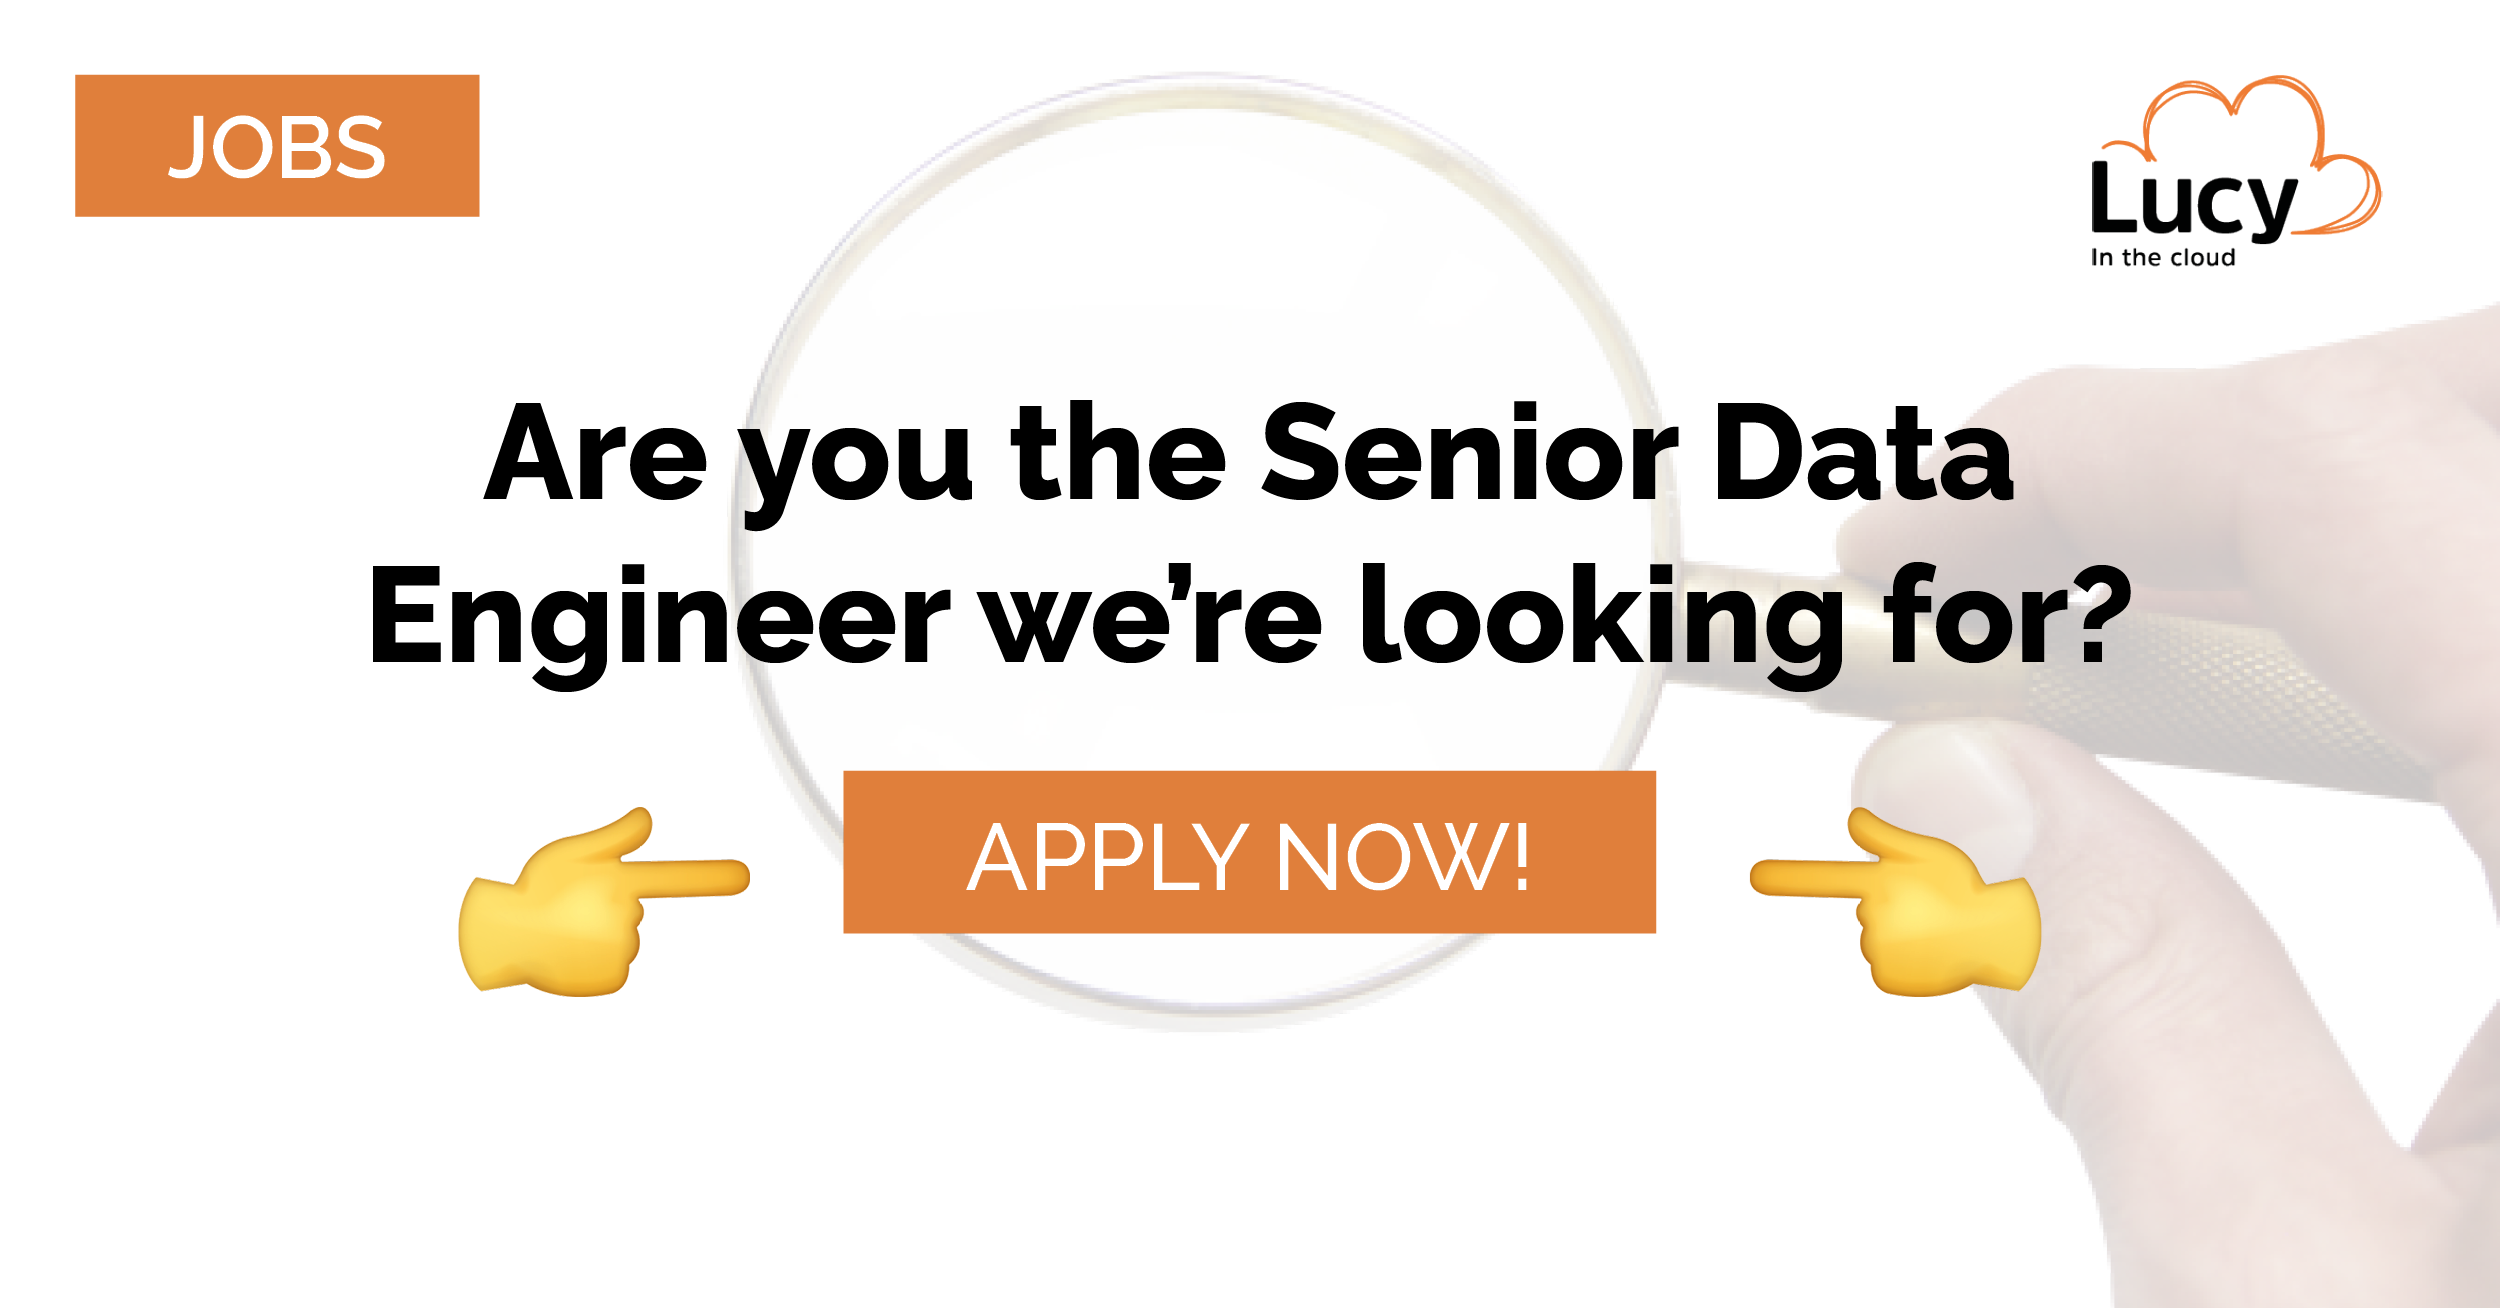 senior data engineer job at lucy in the cloud